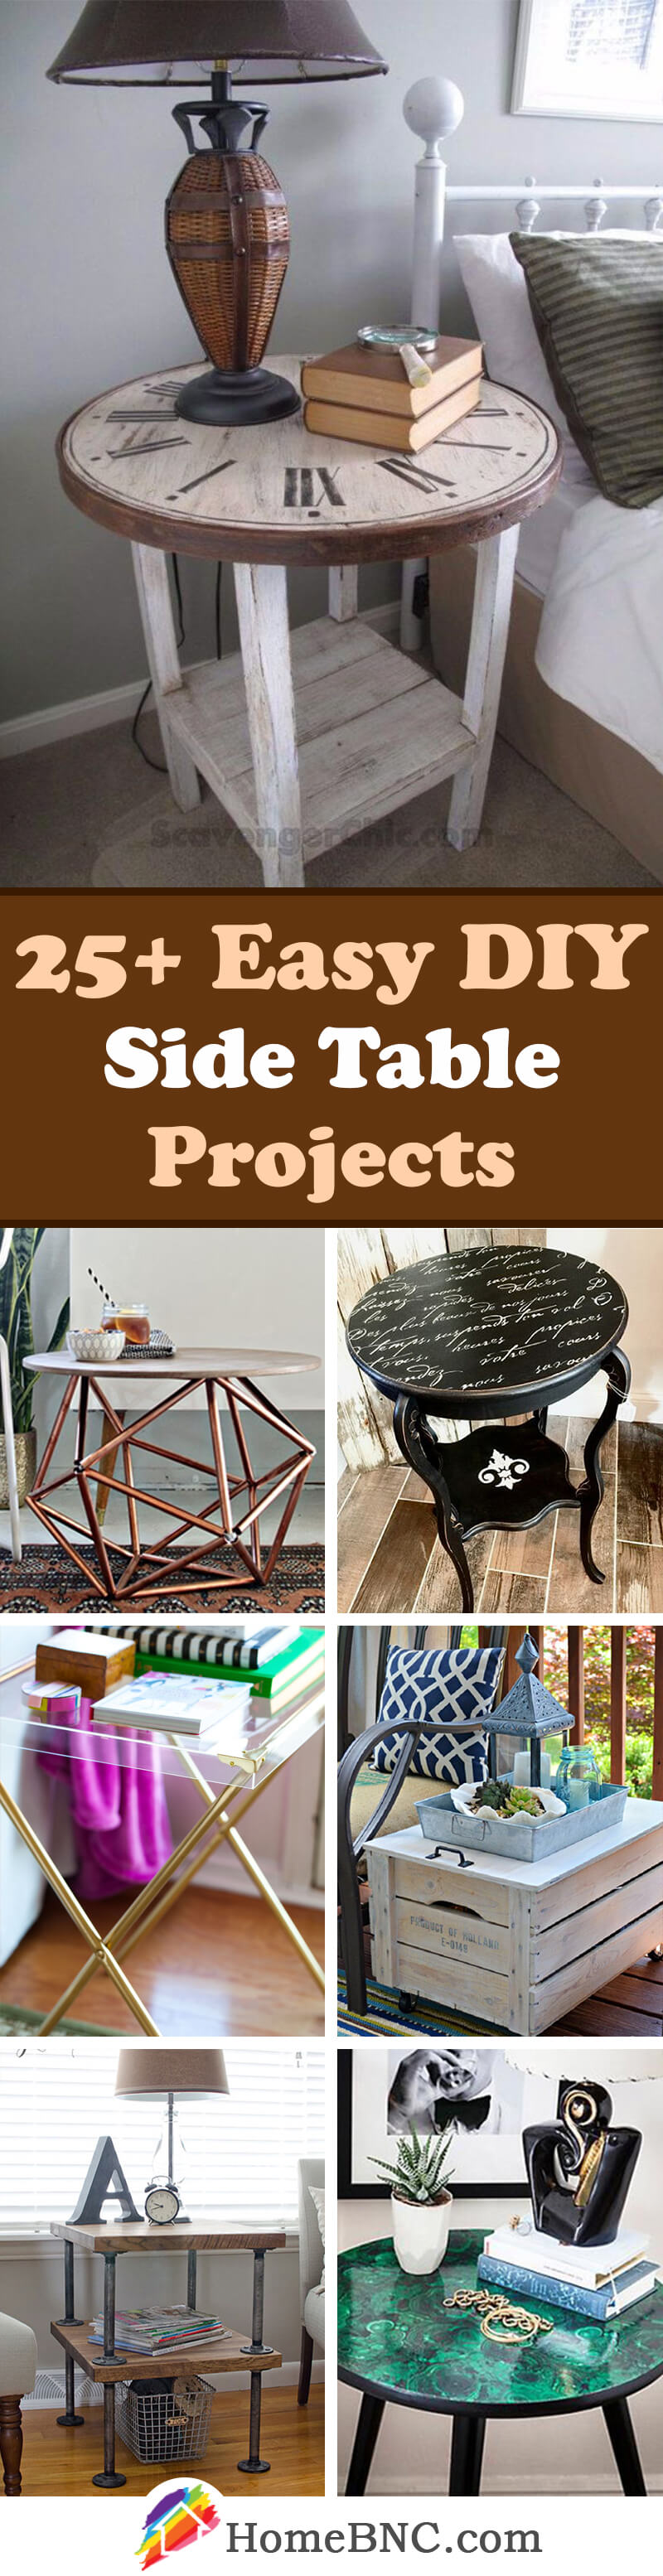 DIY Side Table Decor Ideas